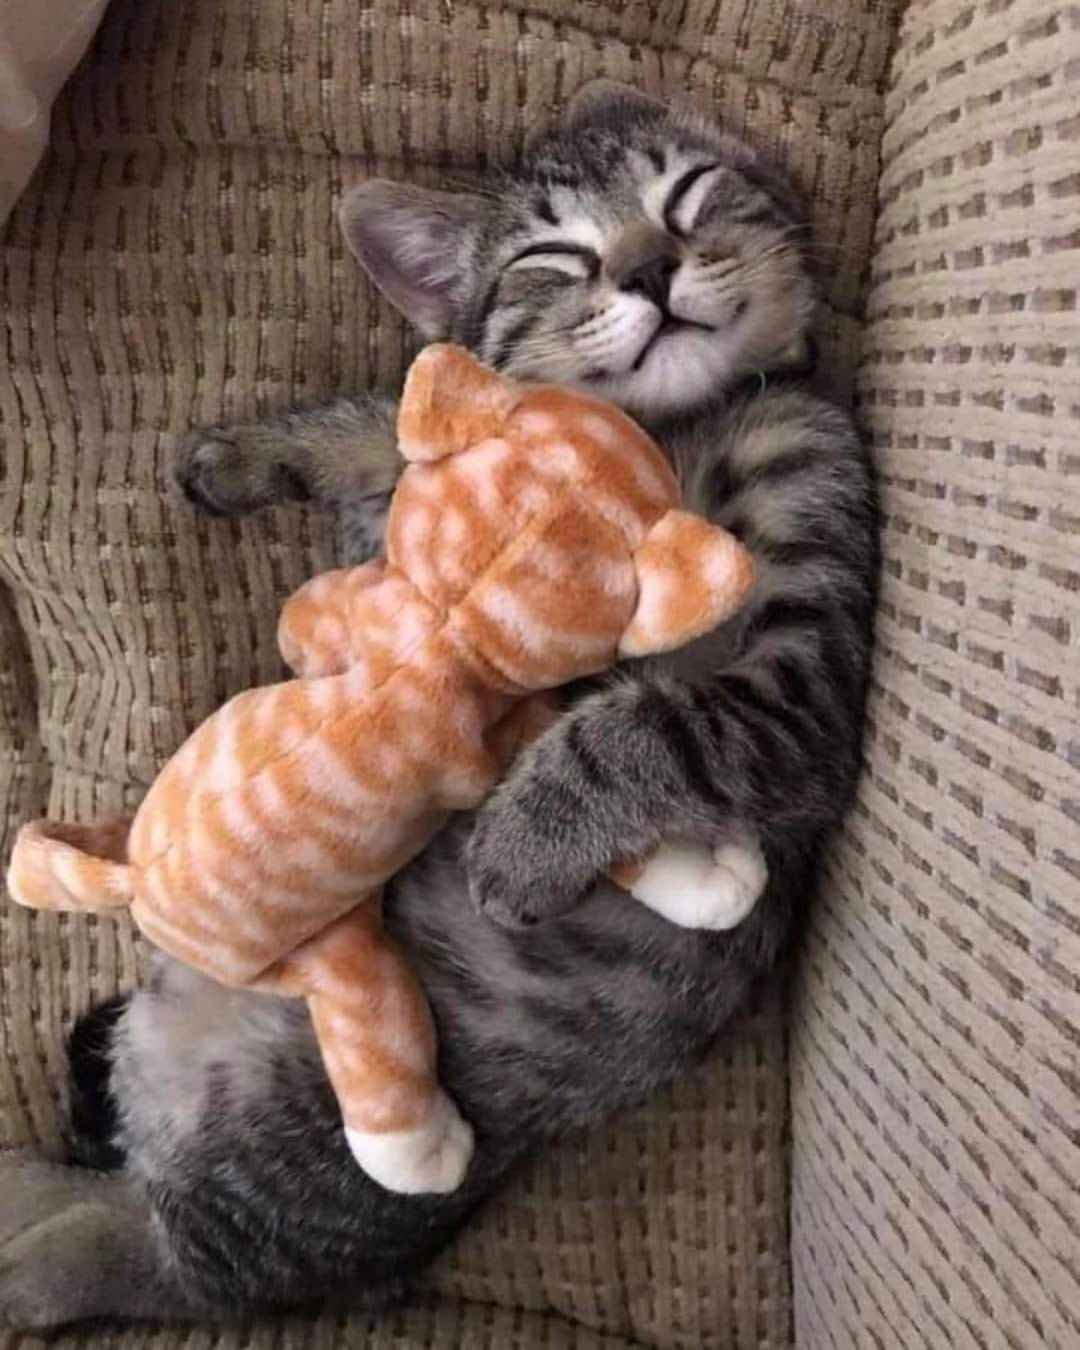 Pin By Lori Lamb On Cutie Catz In 2020 Cute Puppies Kittens Cutest Cats And Kittens